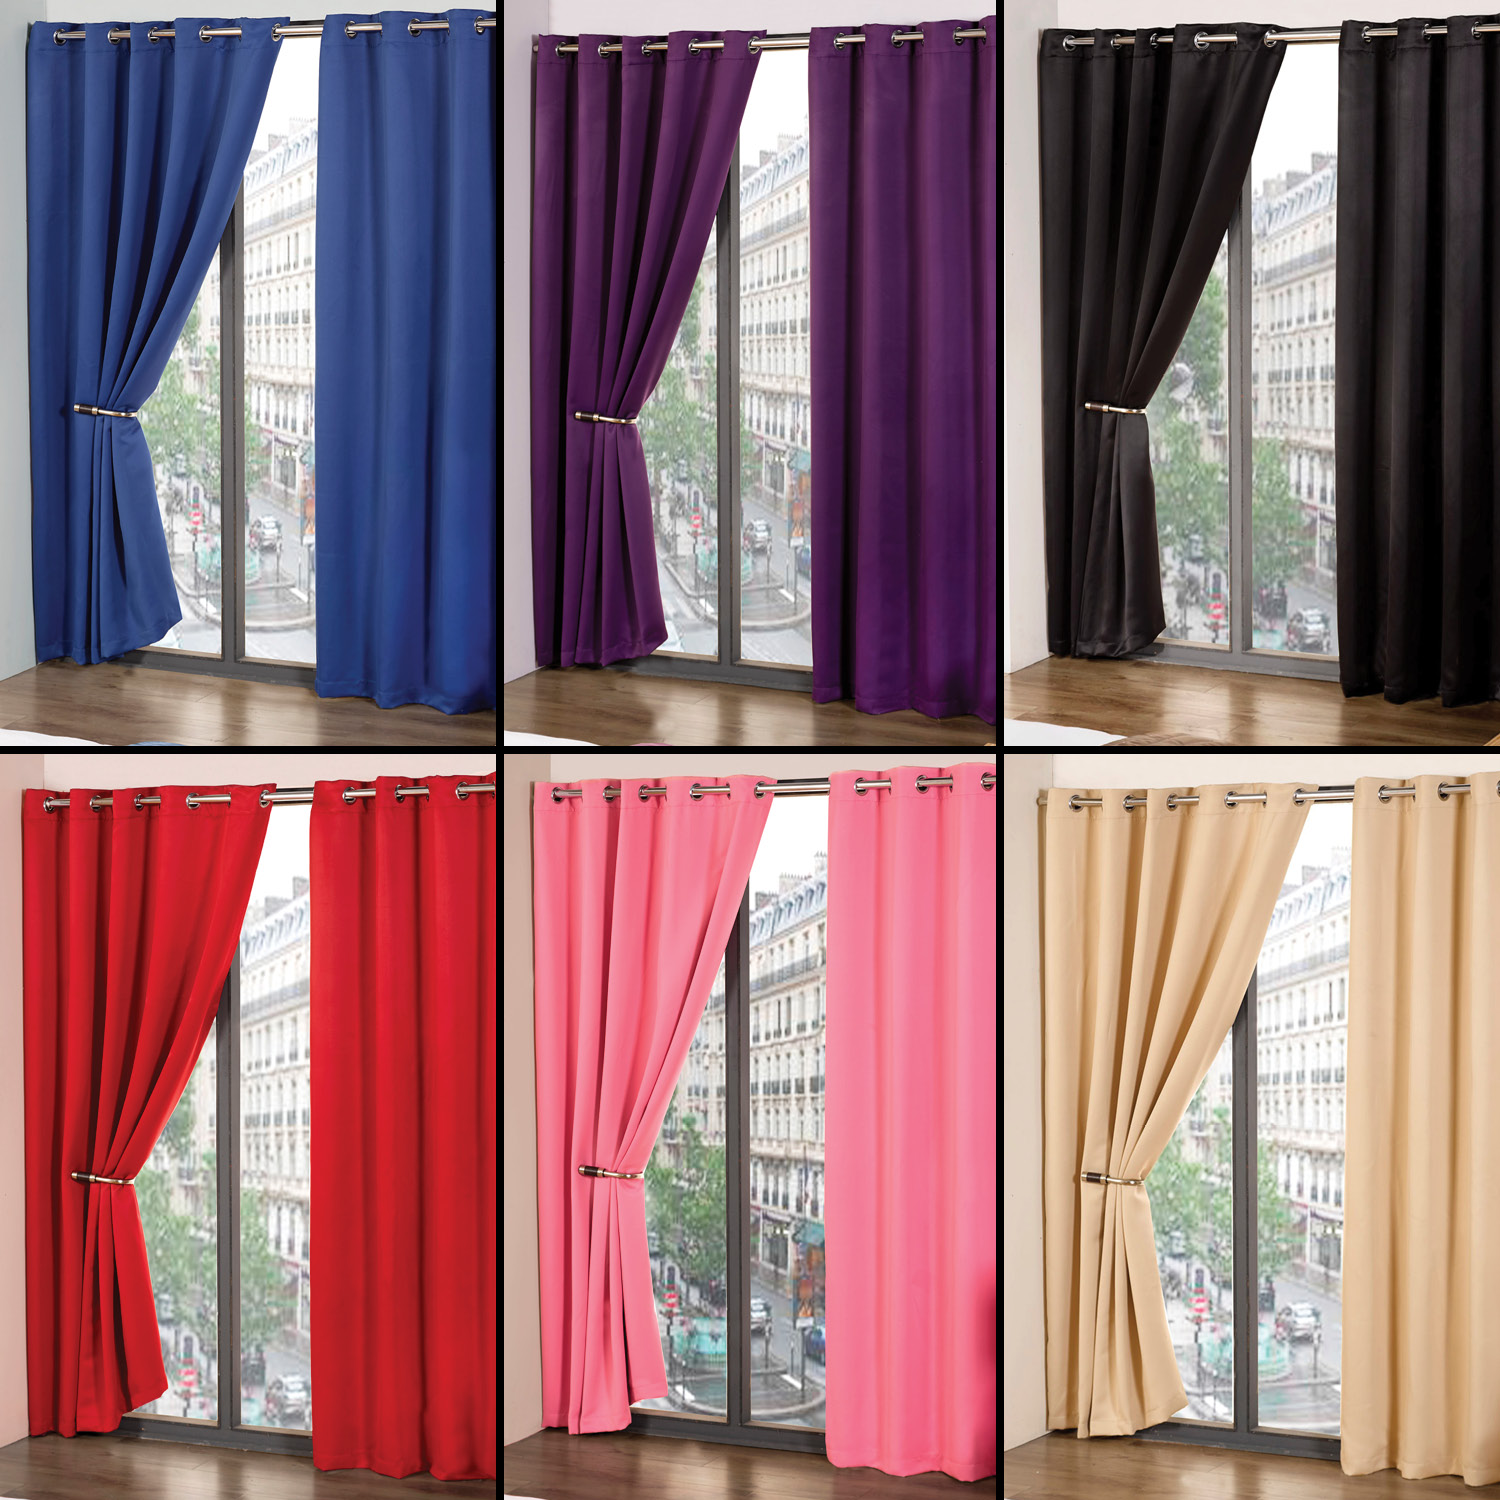 Cheap Blackout Curtains for Inspiring Home Decorating Ideas: White Light Blocking Curtains | Cheap Blackout Curtains | Light Blocking Window Panels